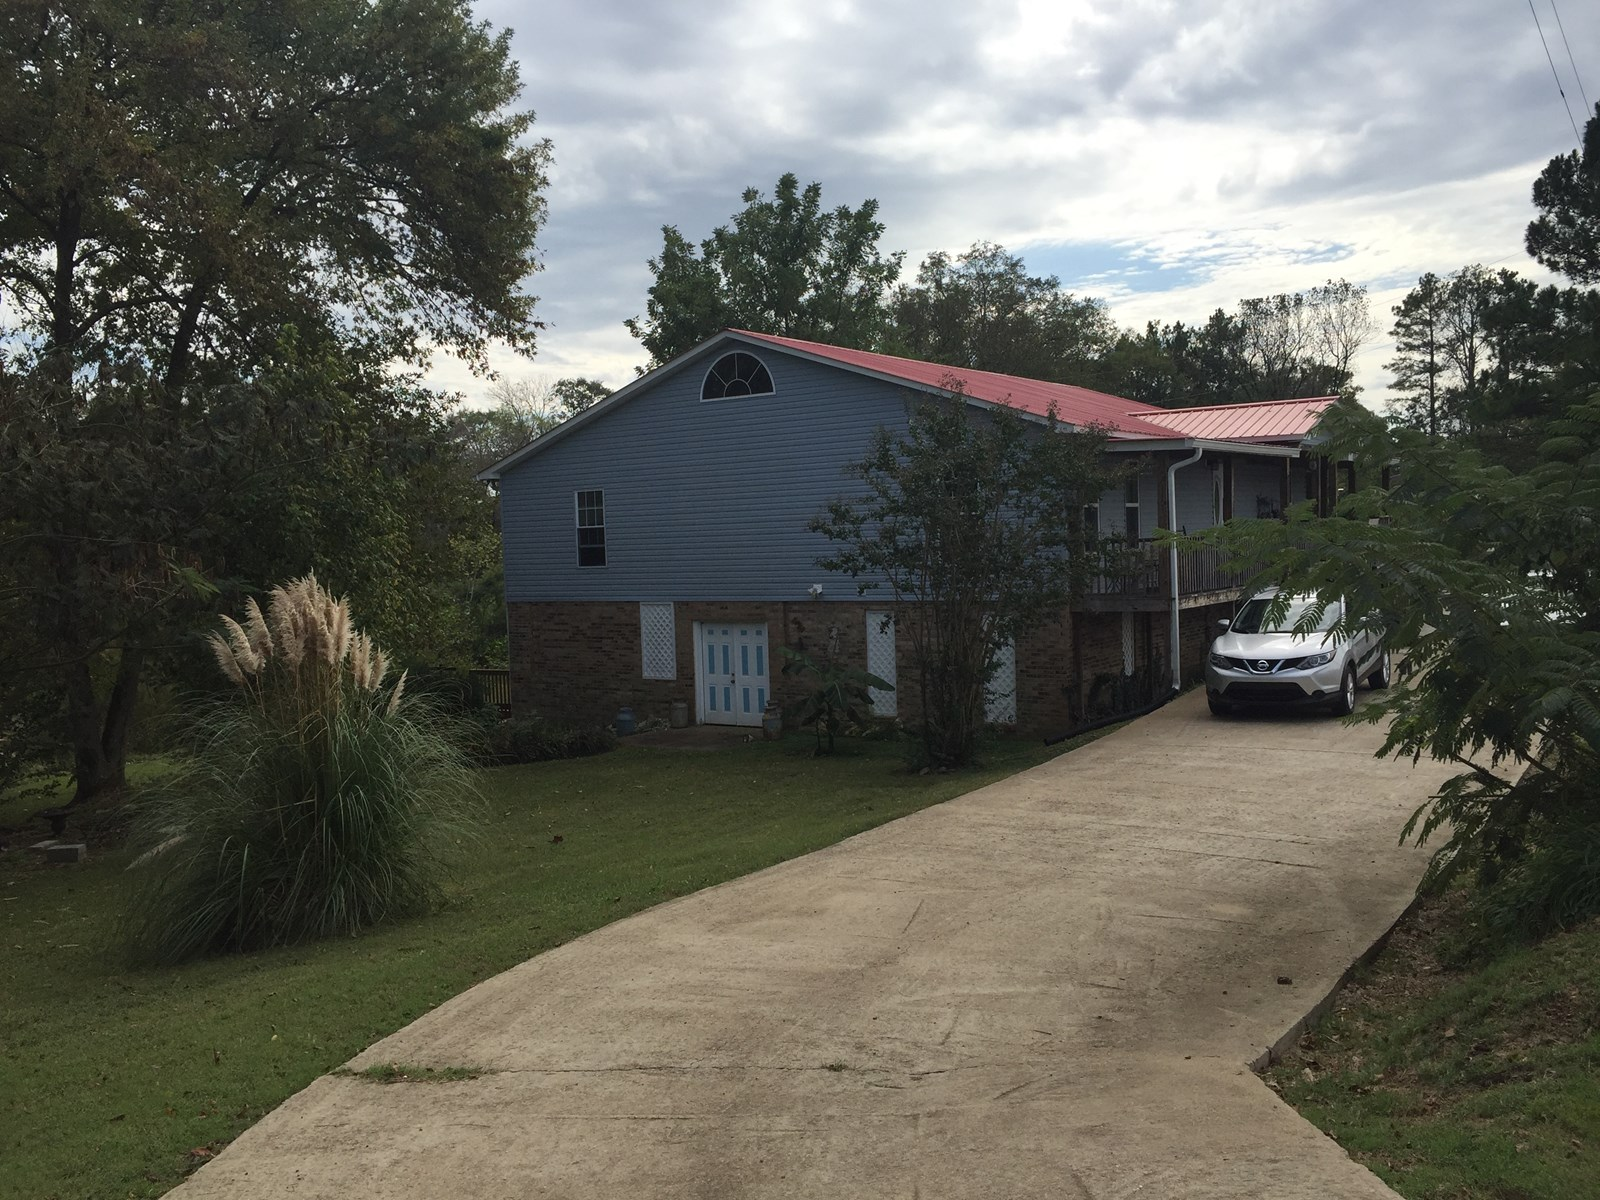 Piney River with a Country Home for sale in Middle TN